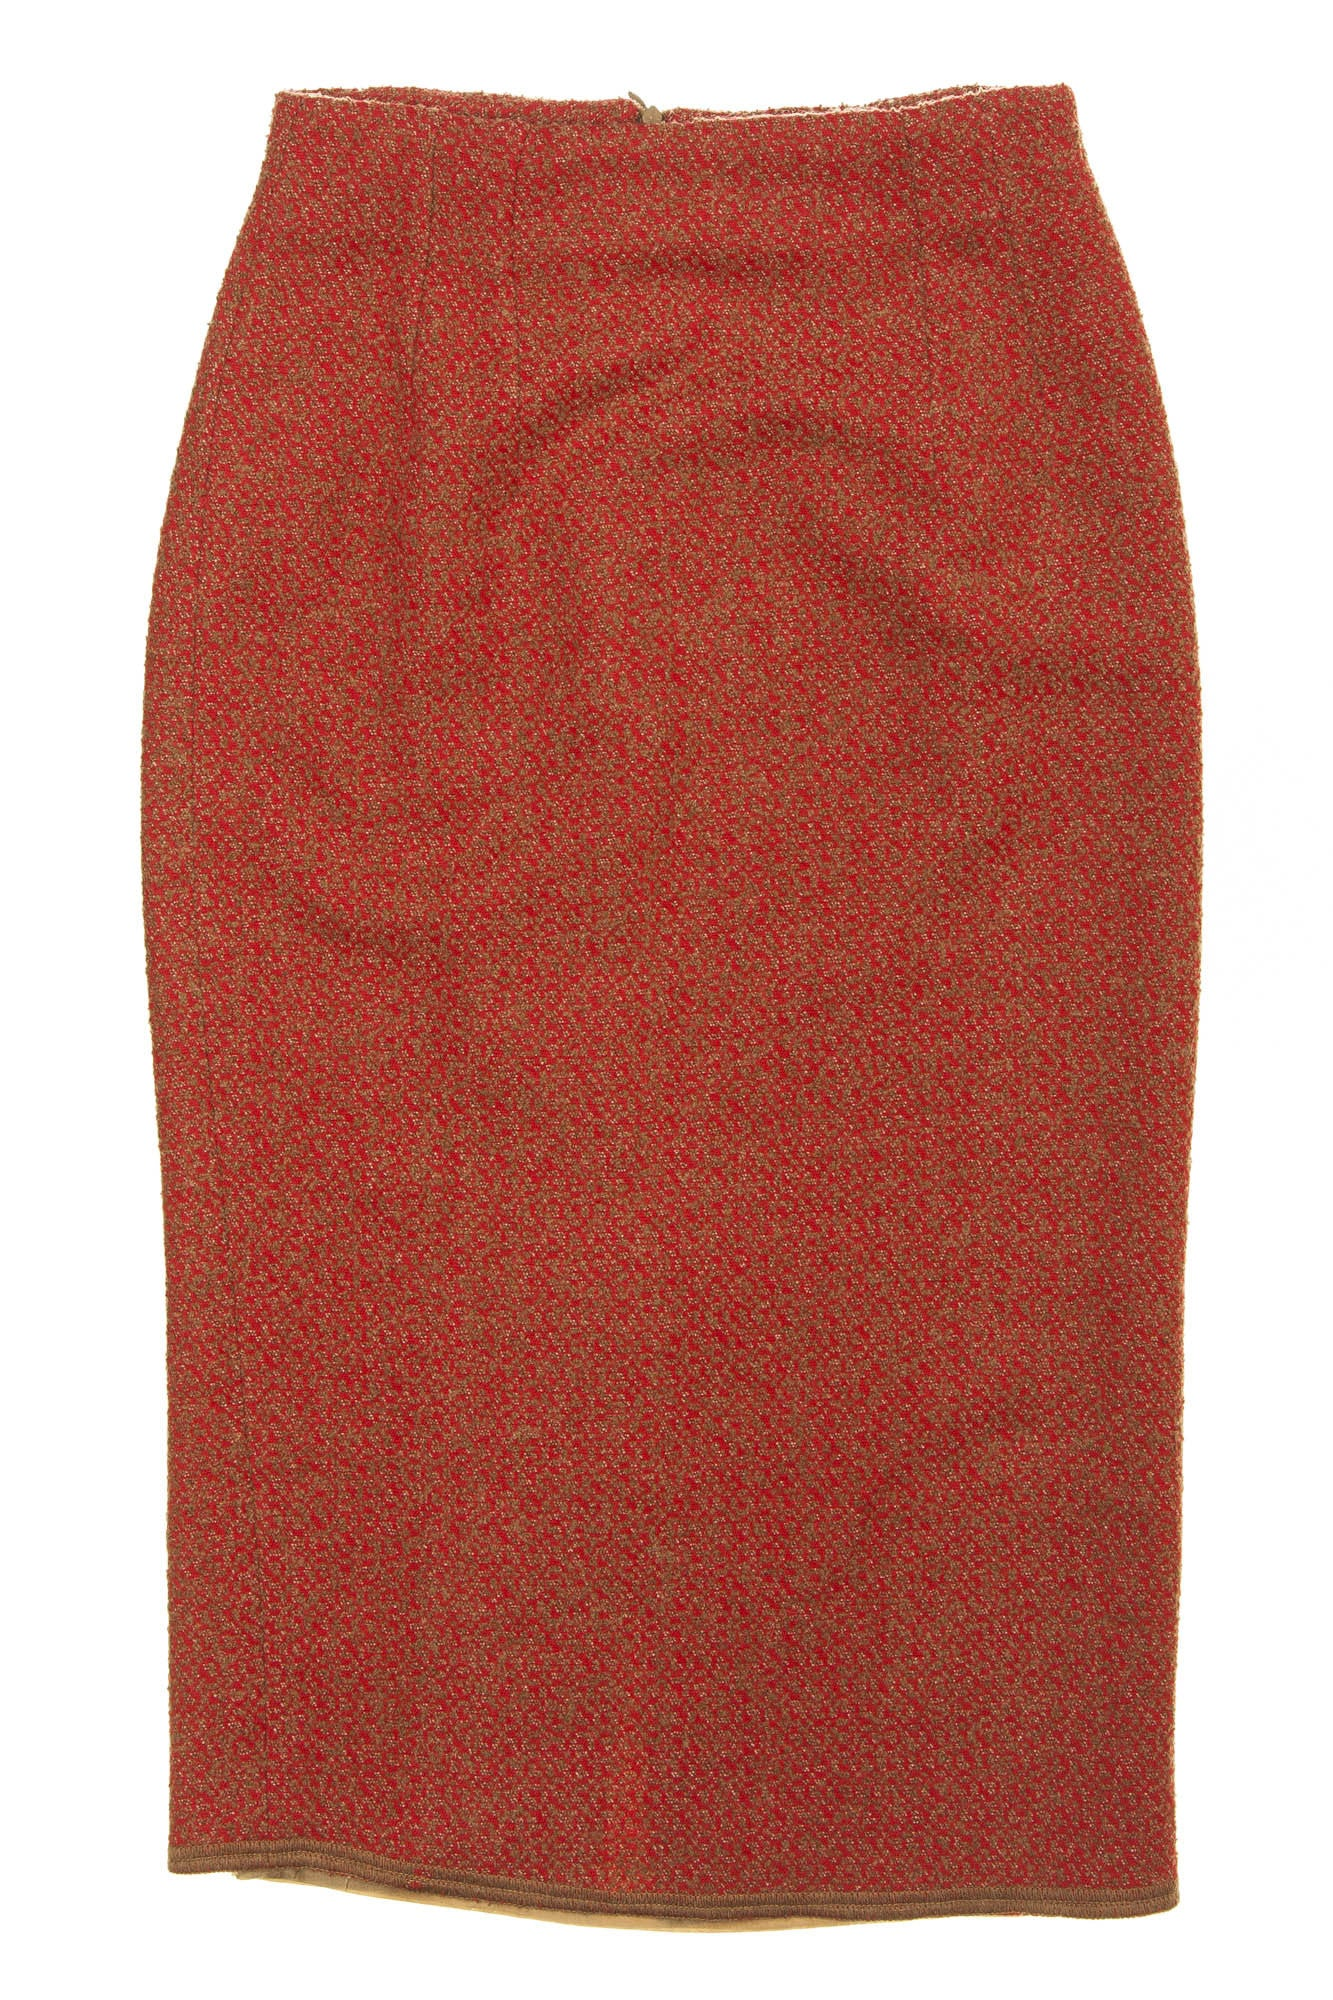 b73e395c7 Fendi - Red Pencil Skirt -IT 40 – LUXHAVE